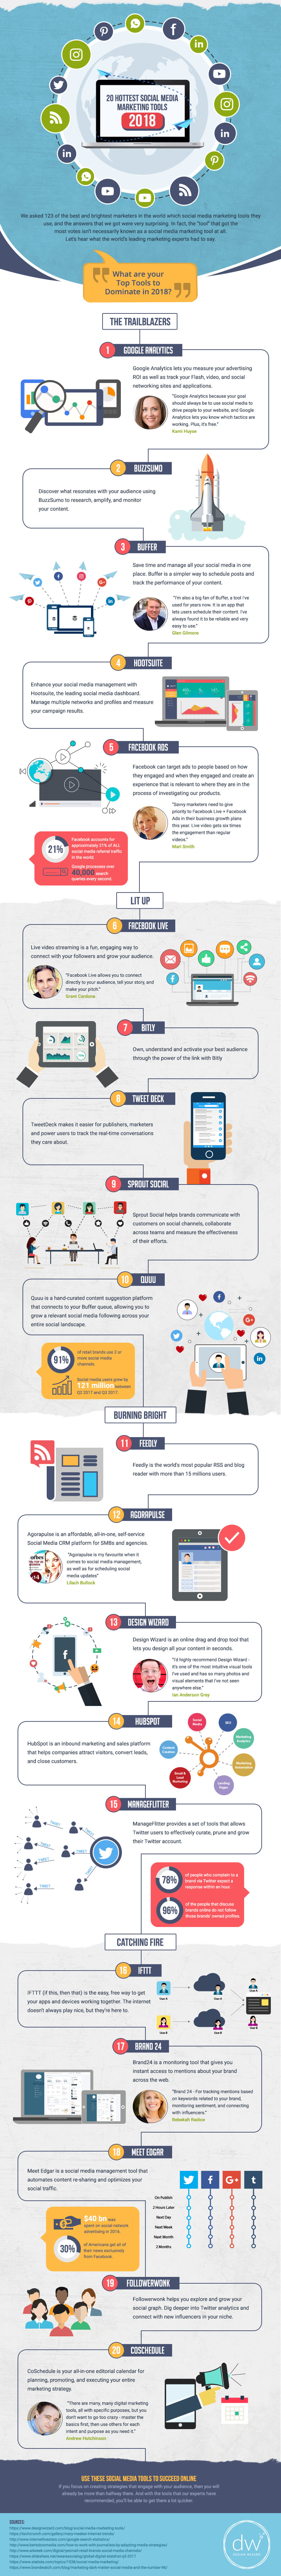 lead magnet social media tools infographic